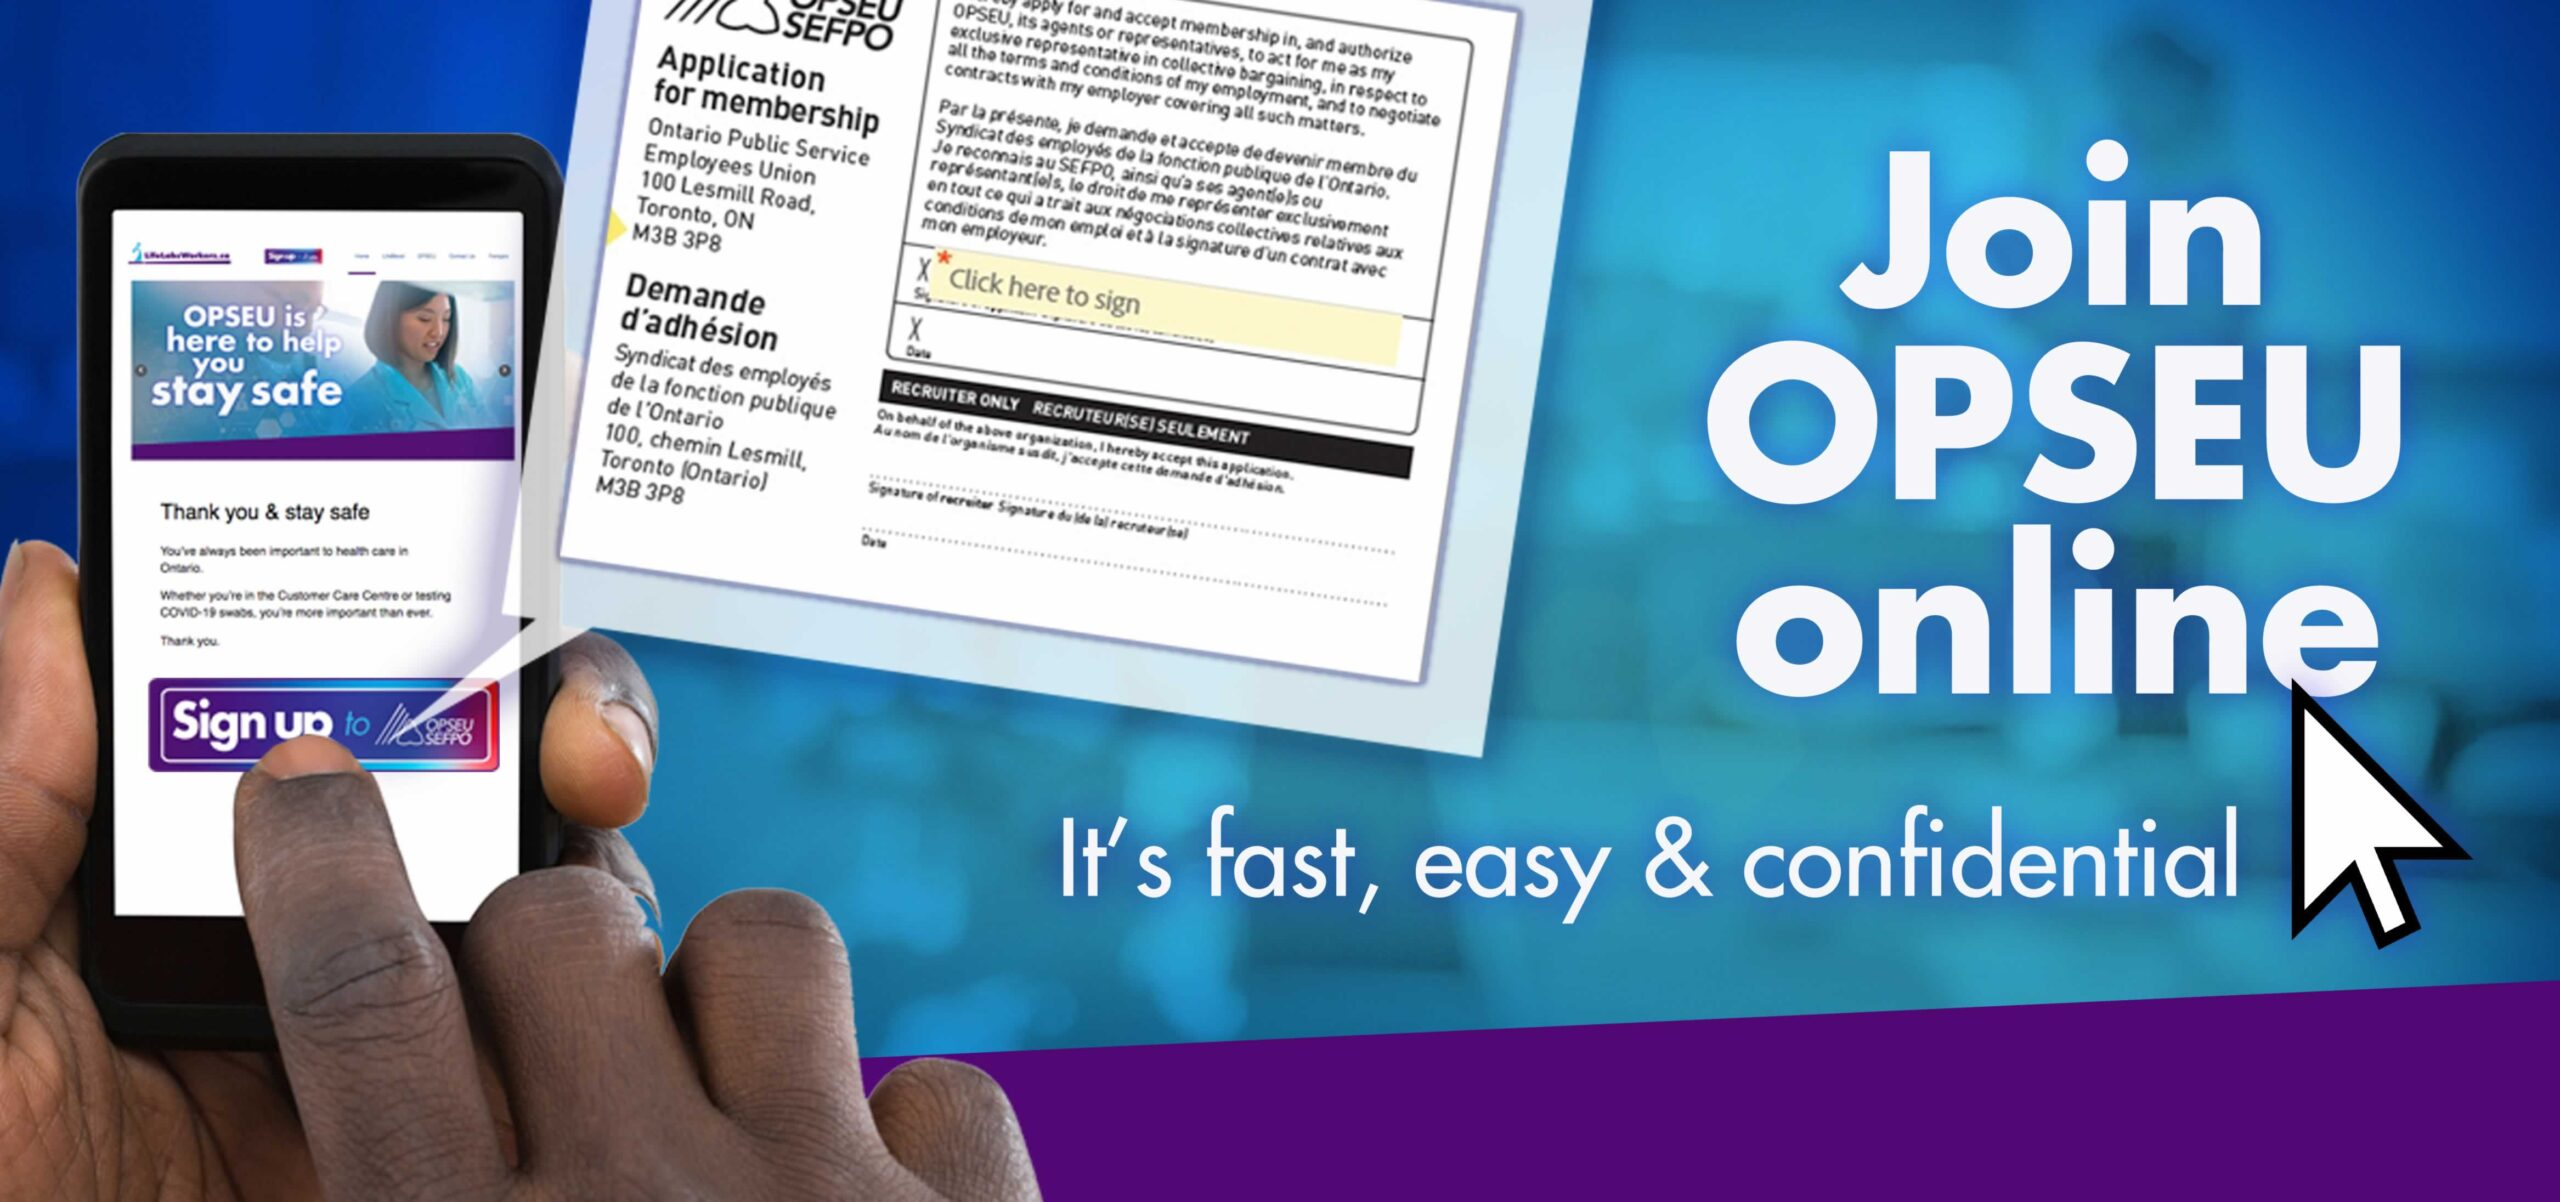 Join OPSEU online, its fast and easy